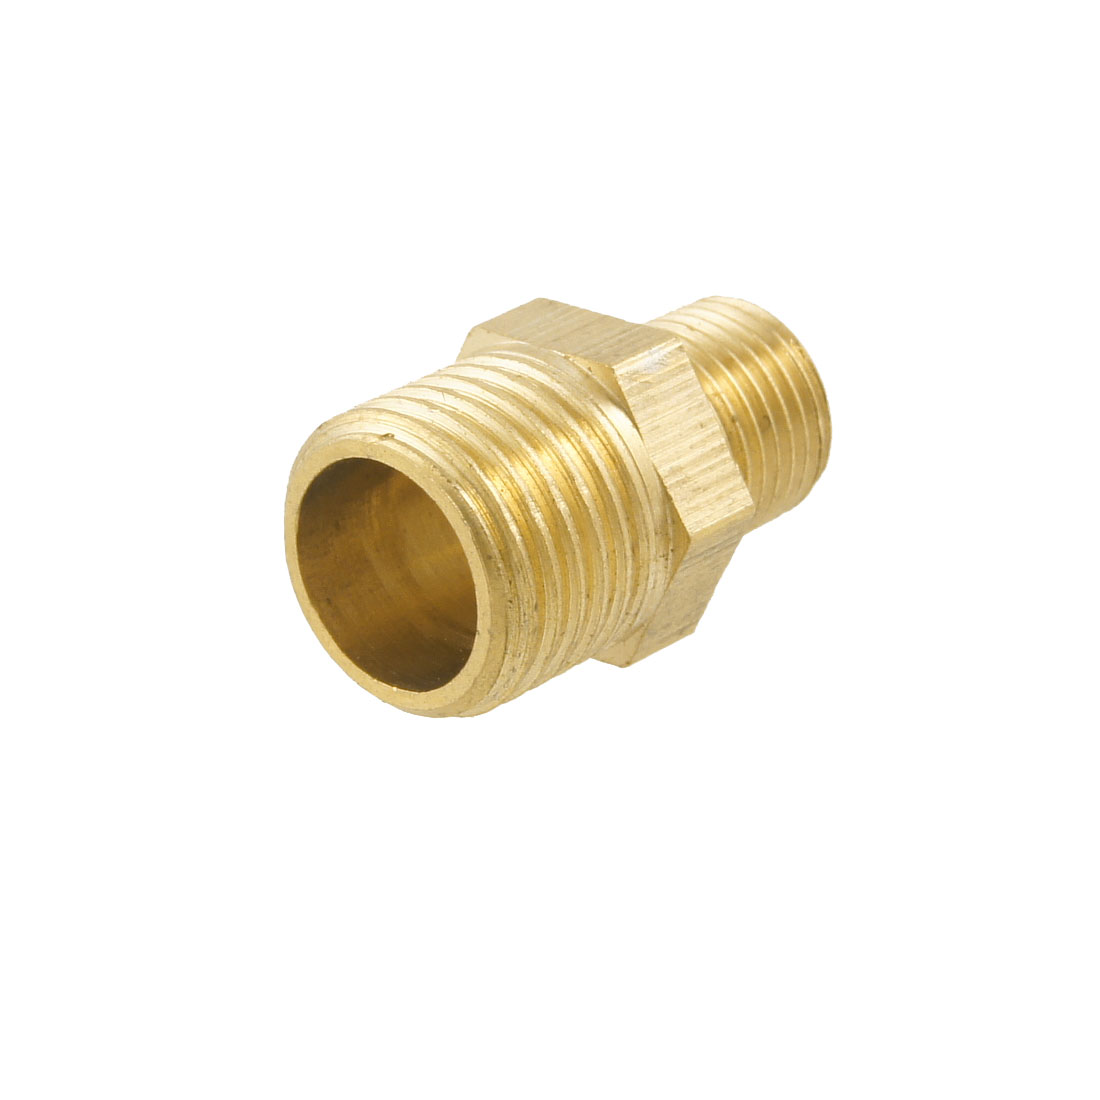 18.5mm Long 1/4BSP to 1/8BSP Male Hex Nipple Reducing Connector Fitting